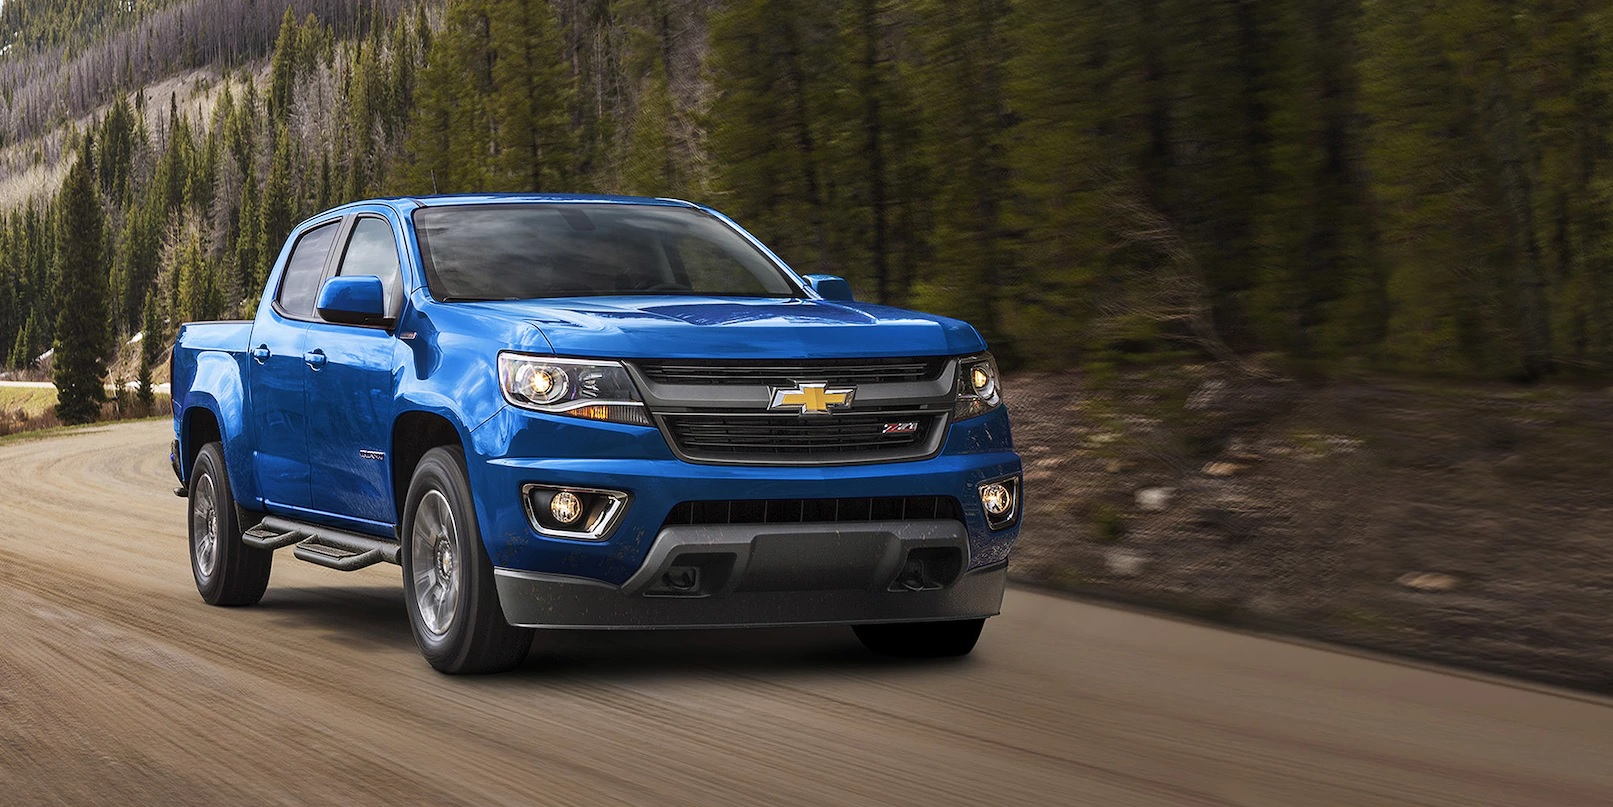 2018 Chevrolet Colorado for Sale in Jackson, MN